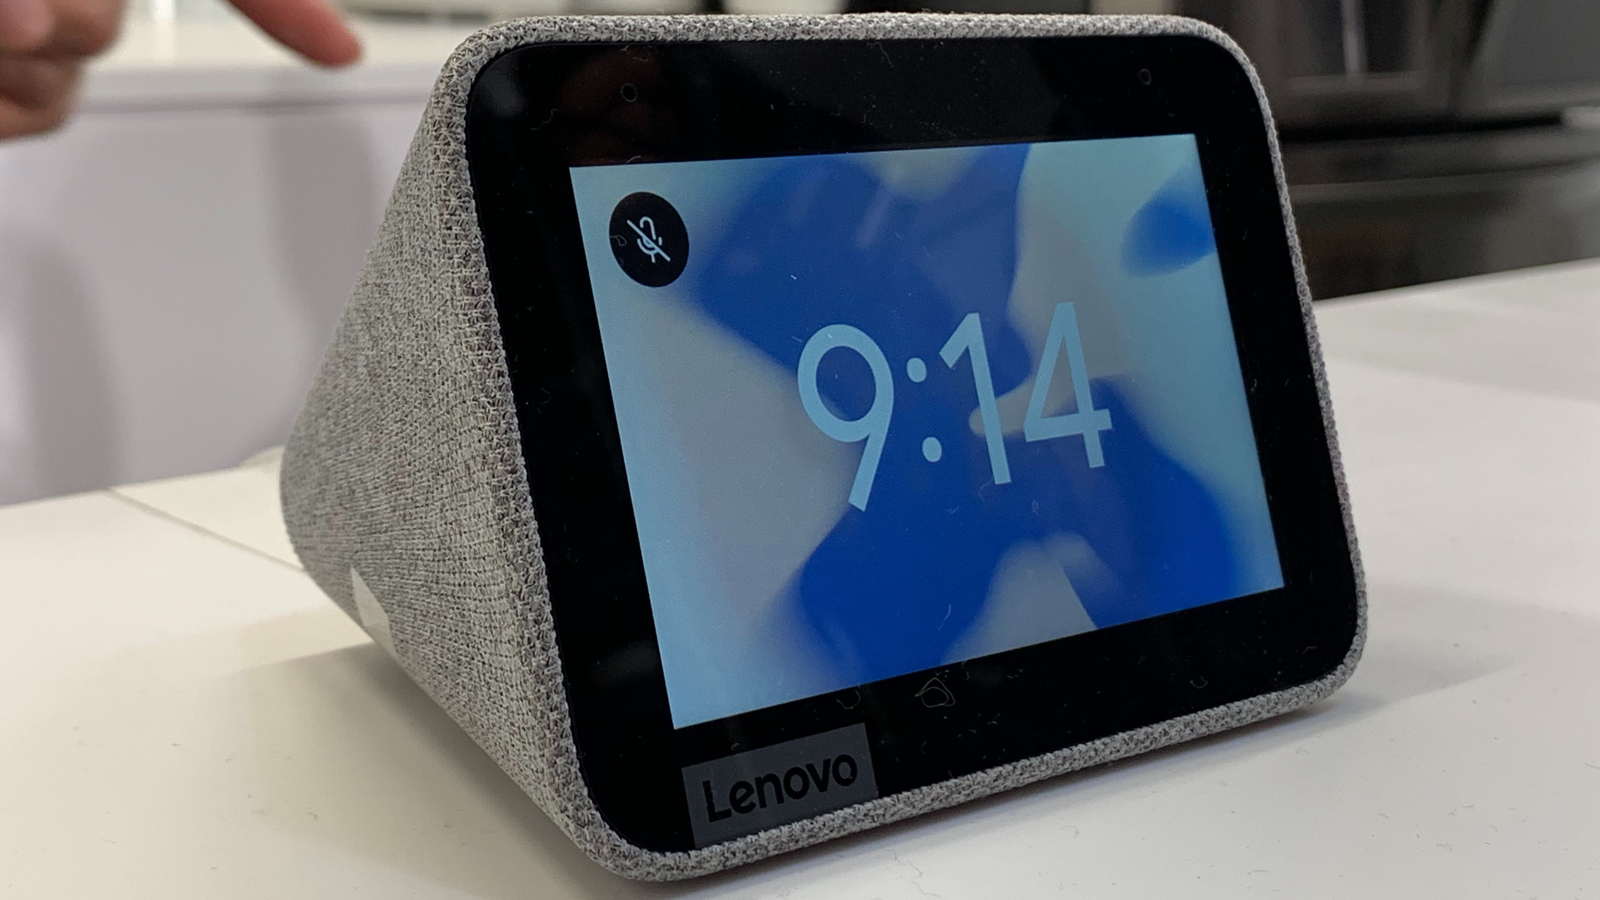 Lenovo's trio of new smart screens includes a clock and dockable tablets